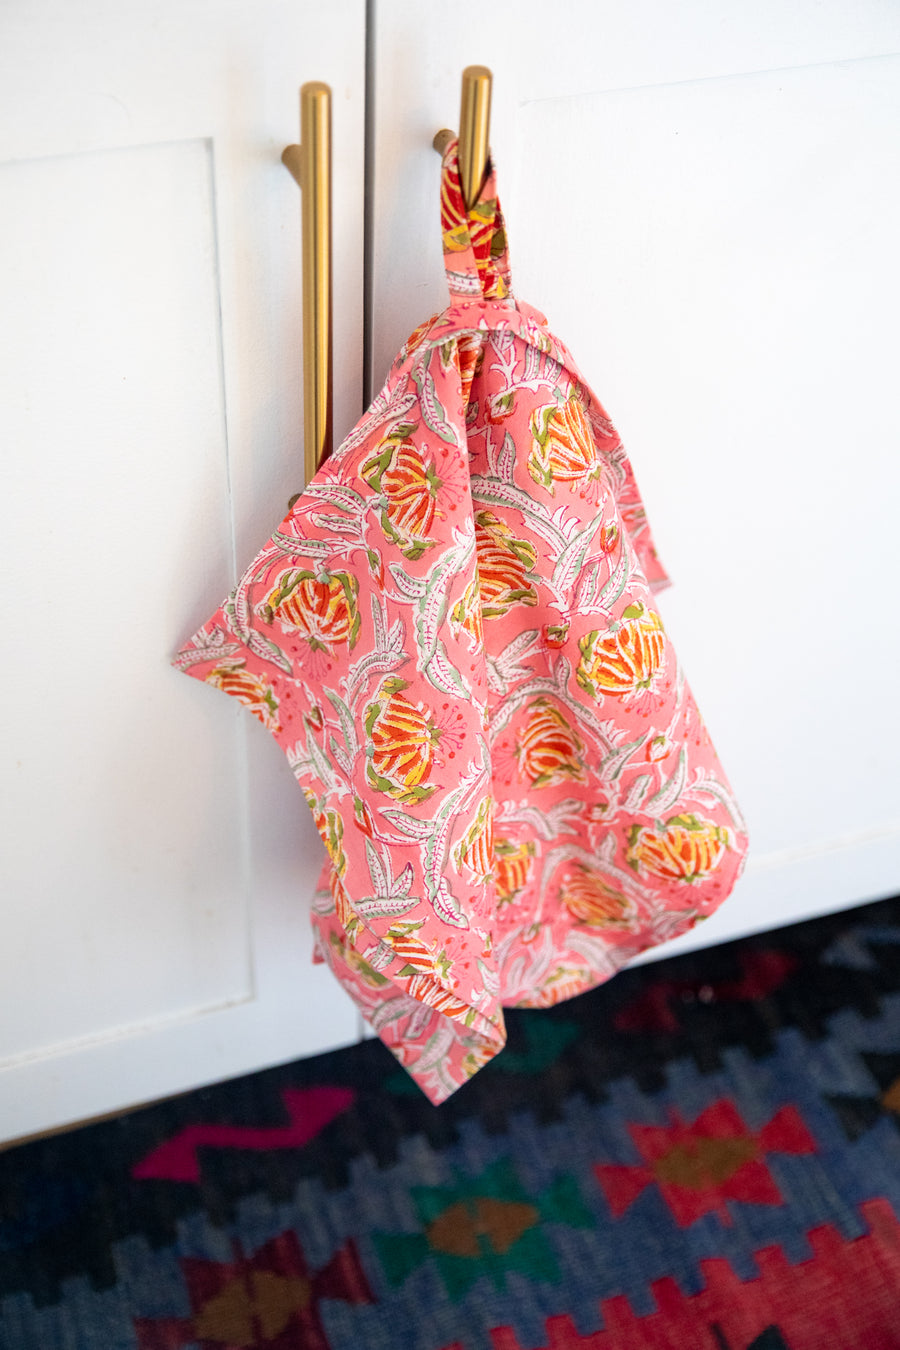 Furbish Studio - Blockprint Kitchen Towels - Coral, yellow, and green floral printed hand towel hanging in a kitchen